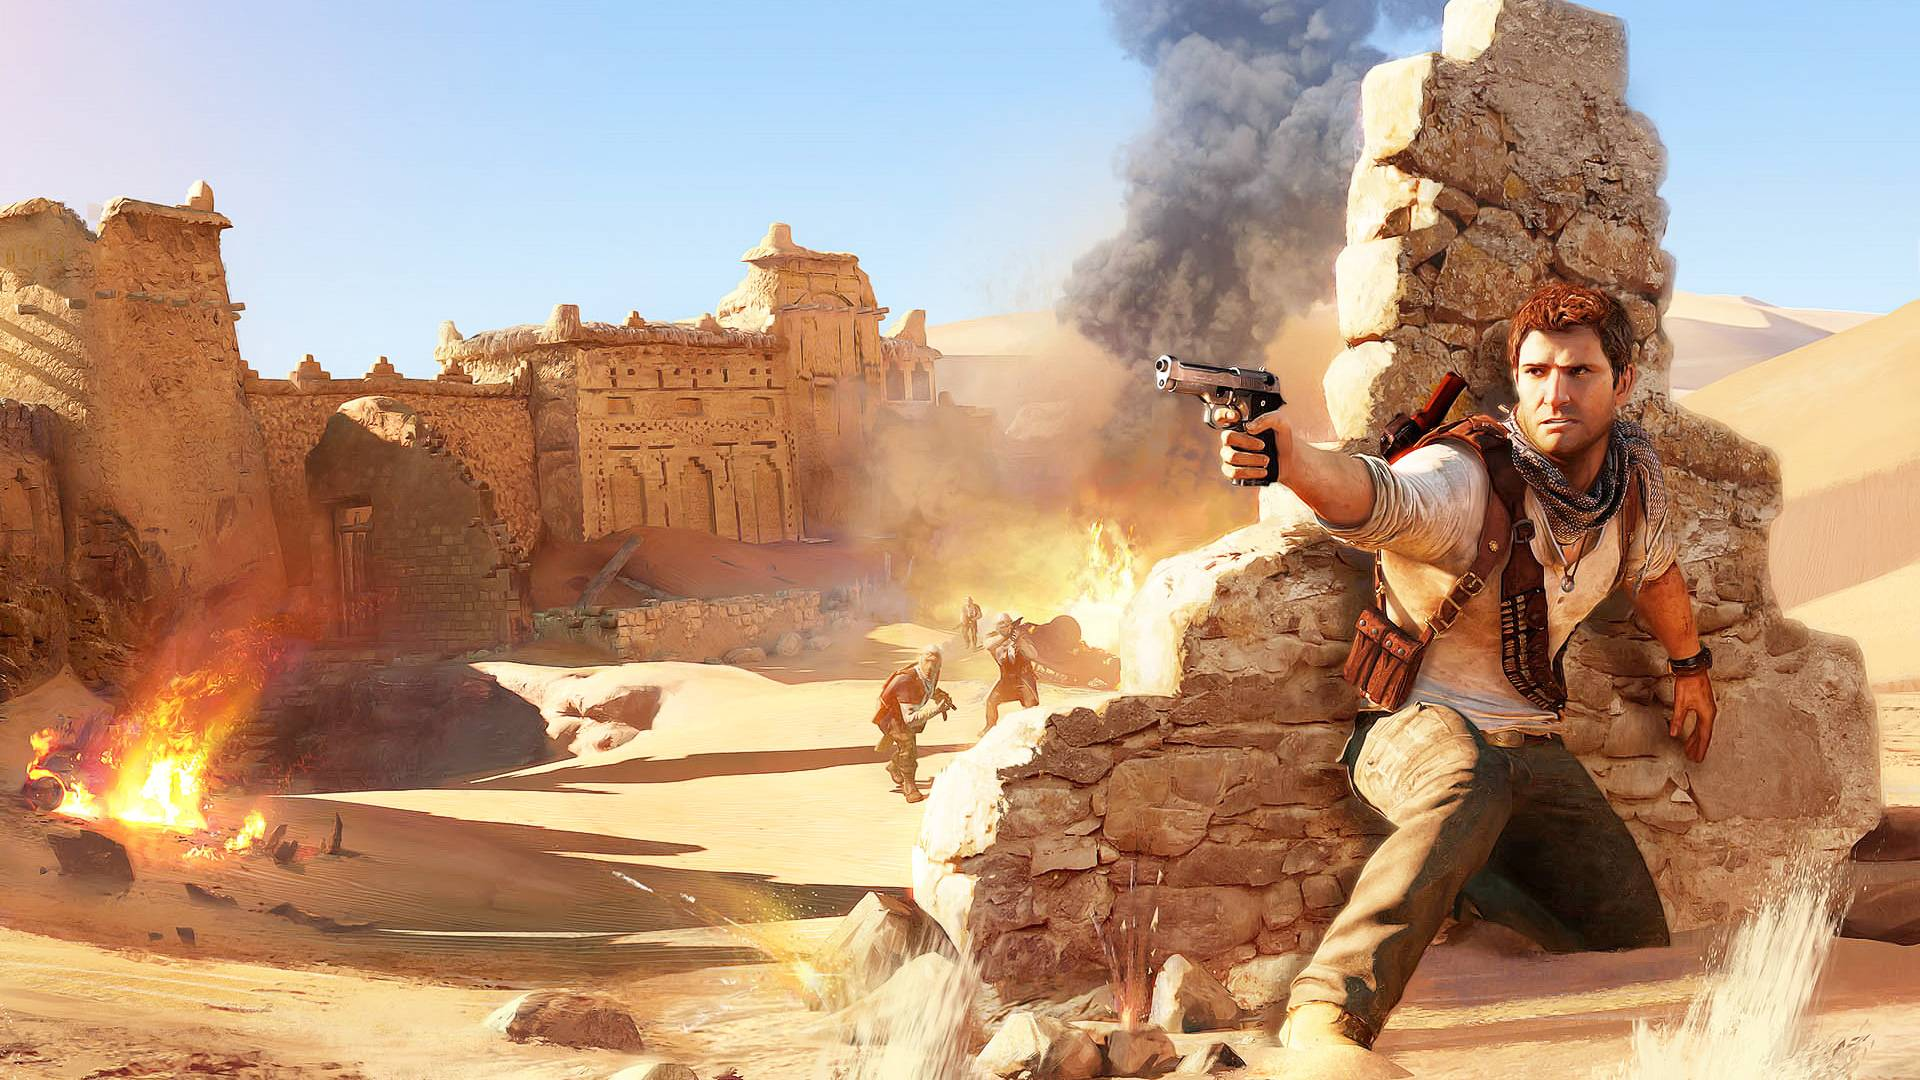 Uncharted 3 Wallpapers in HD GamingBoltcom Video Game News 1920x1080